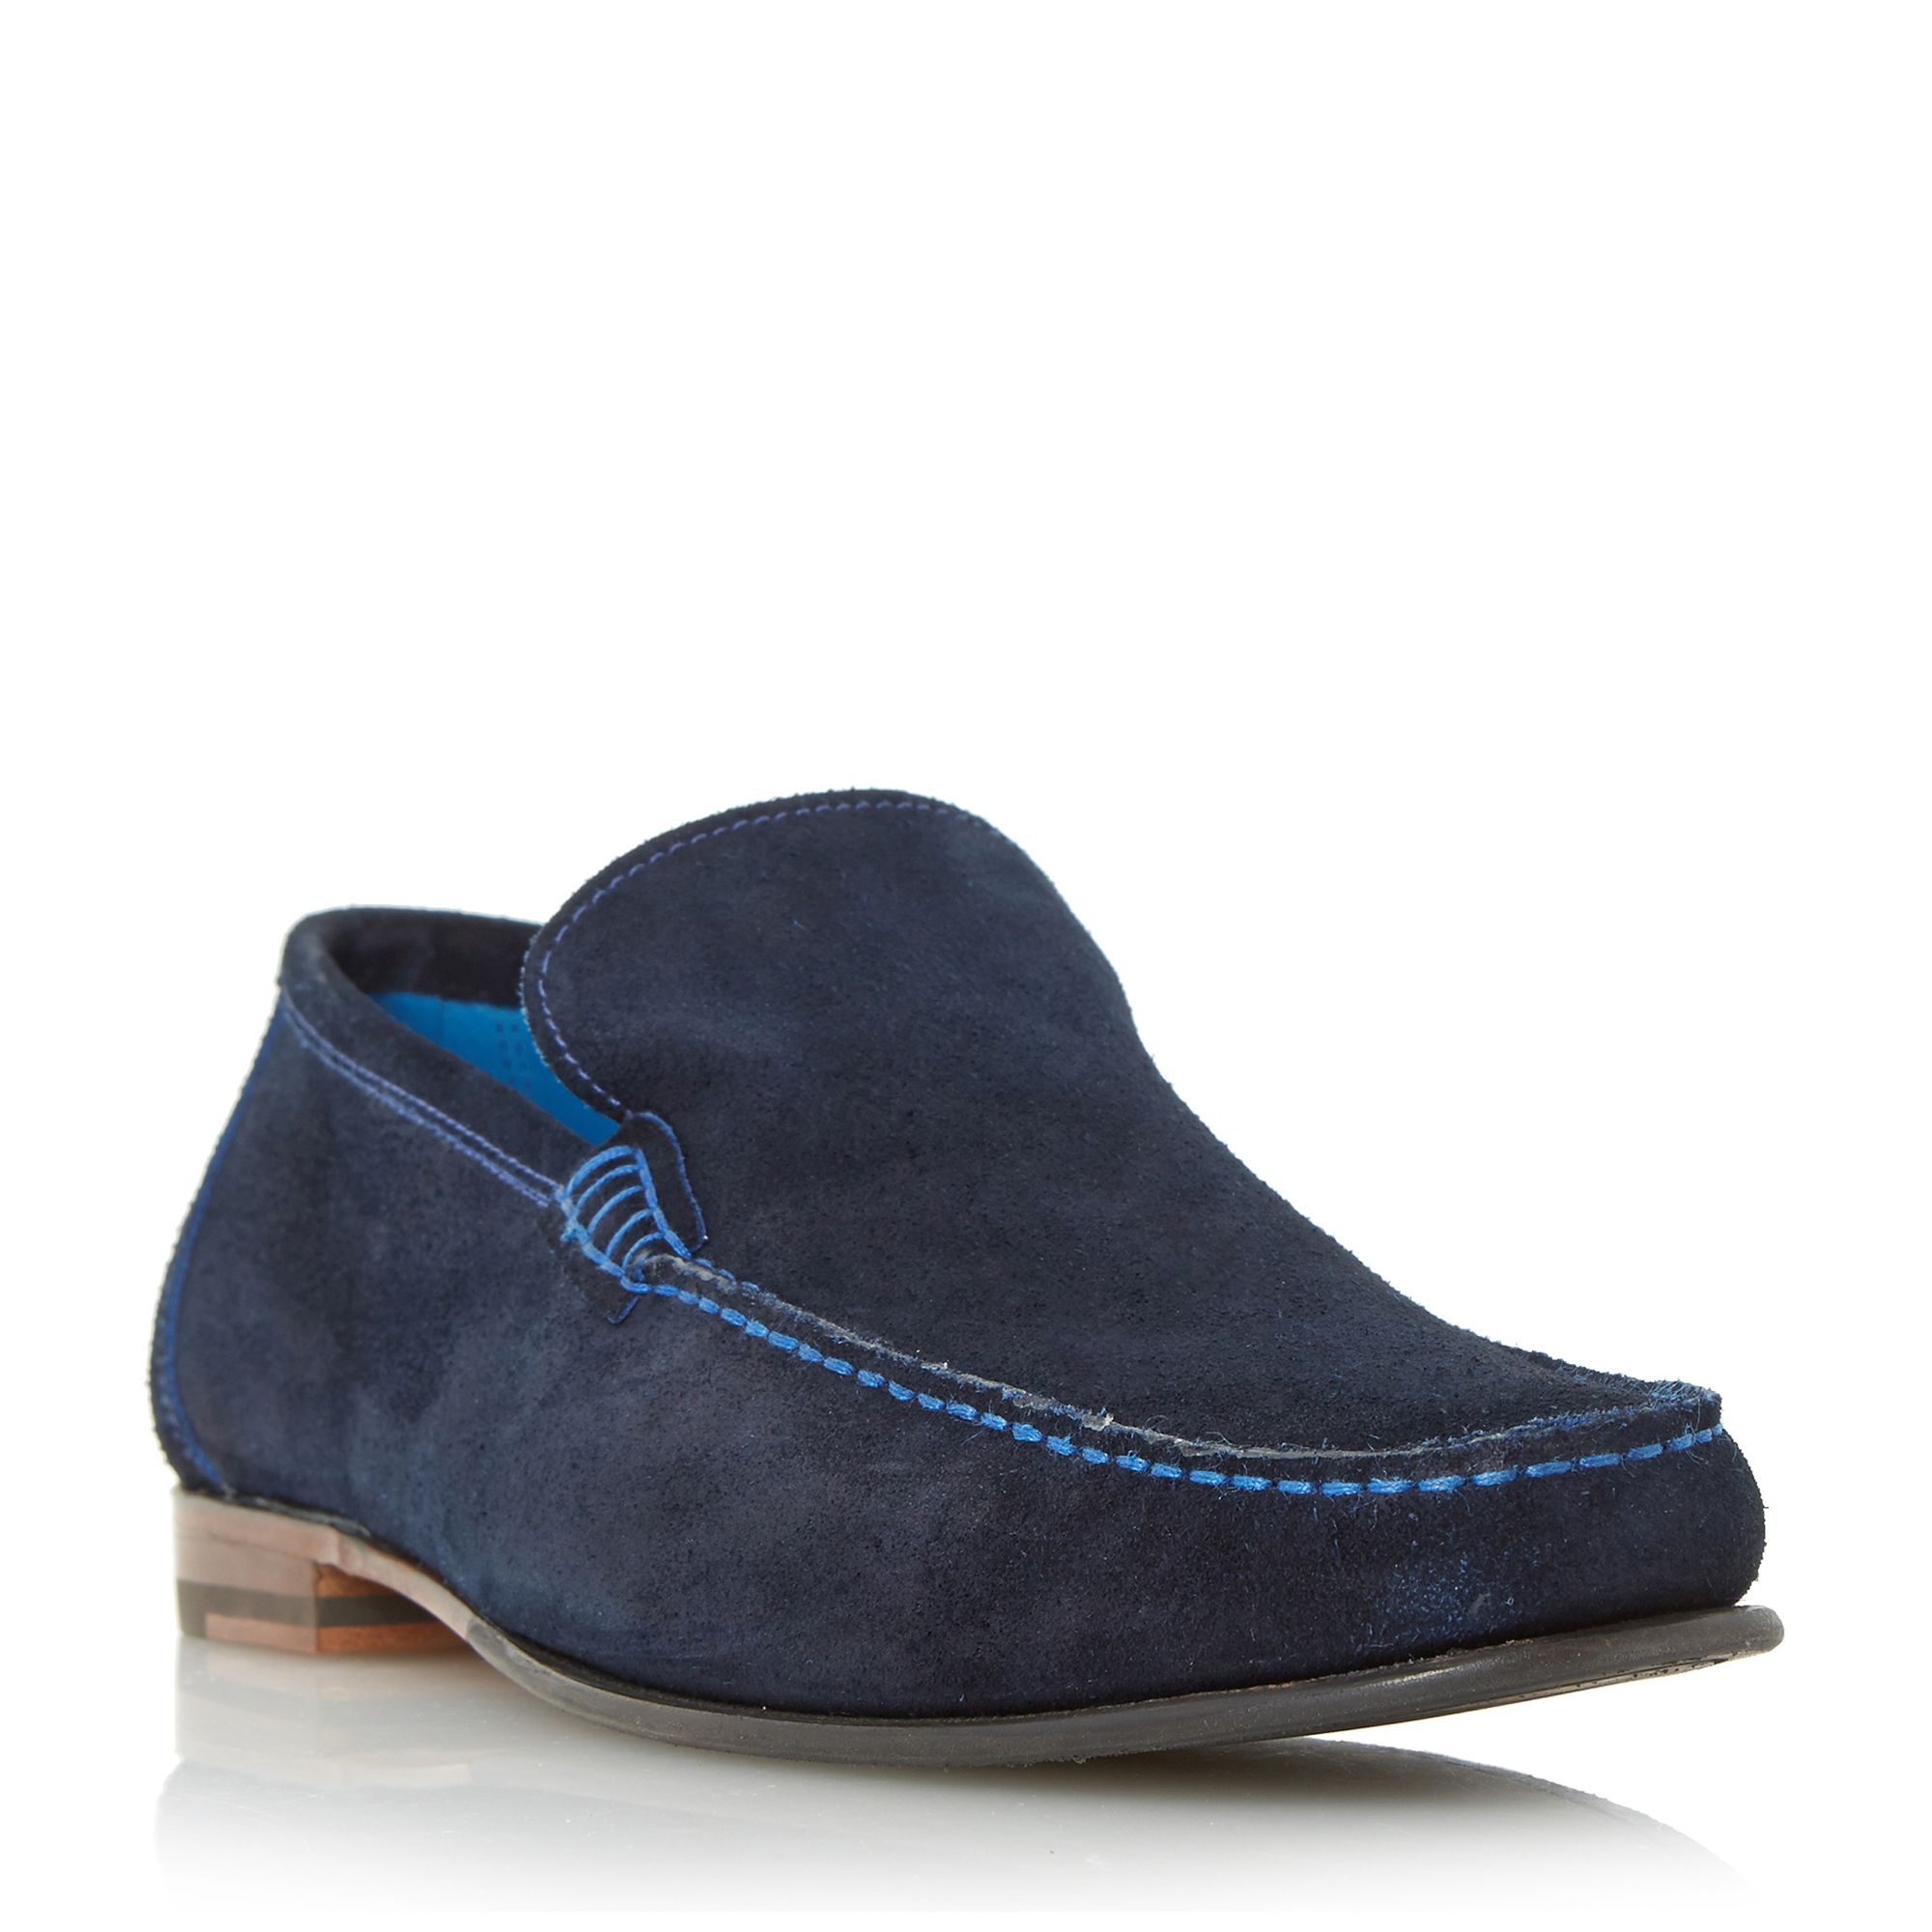 Loake Loake Nicholson contrast stitch suede loafers, Navy